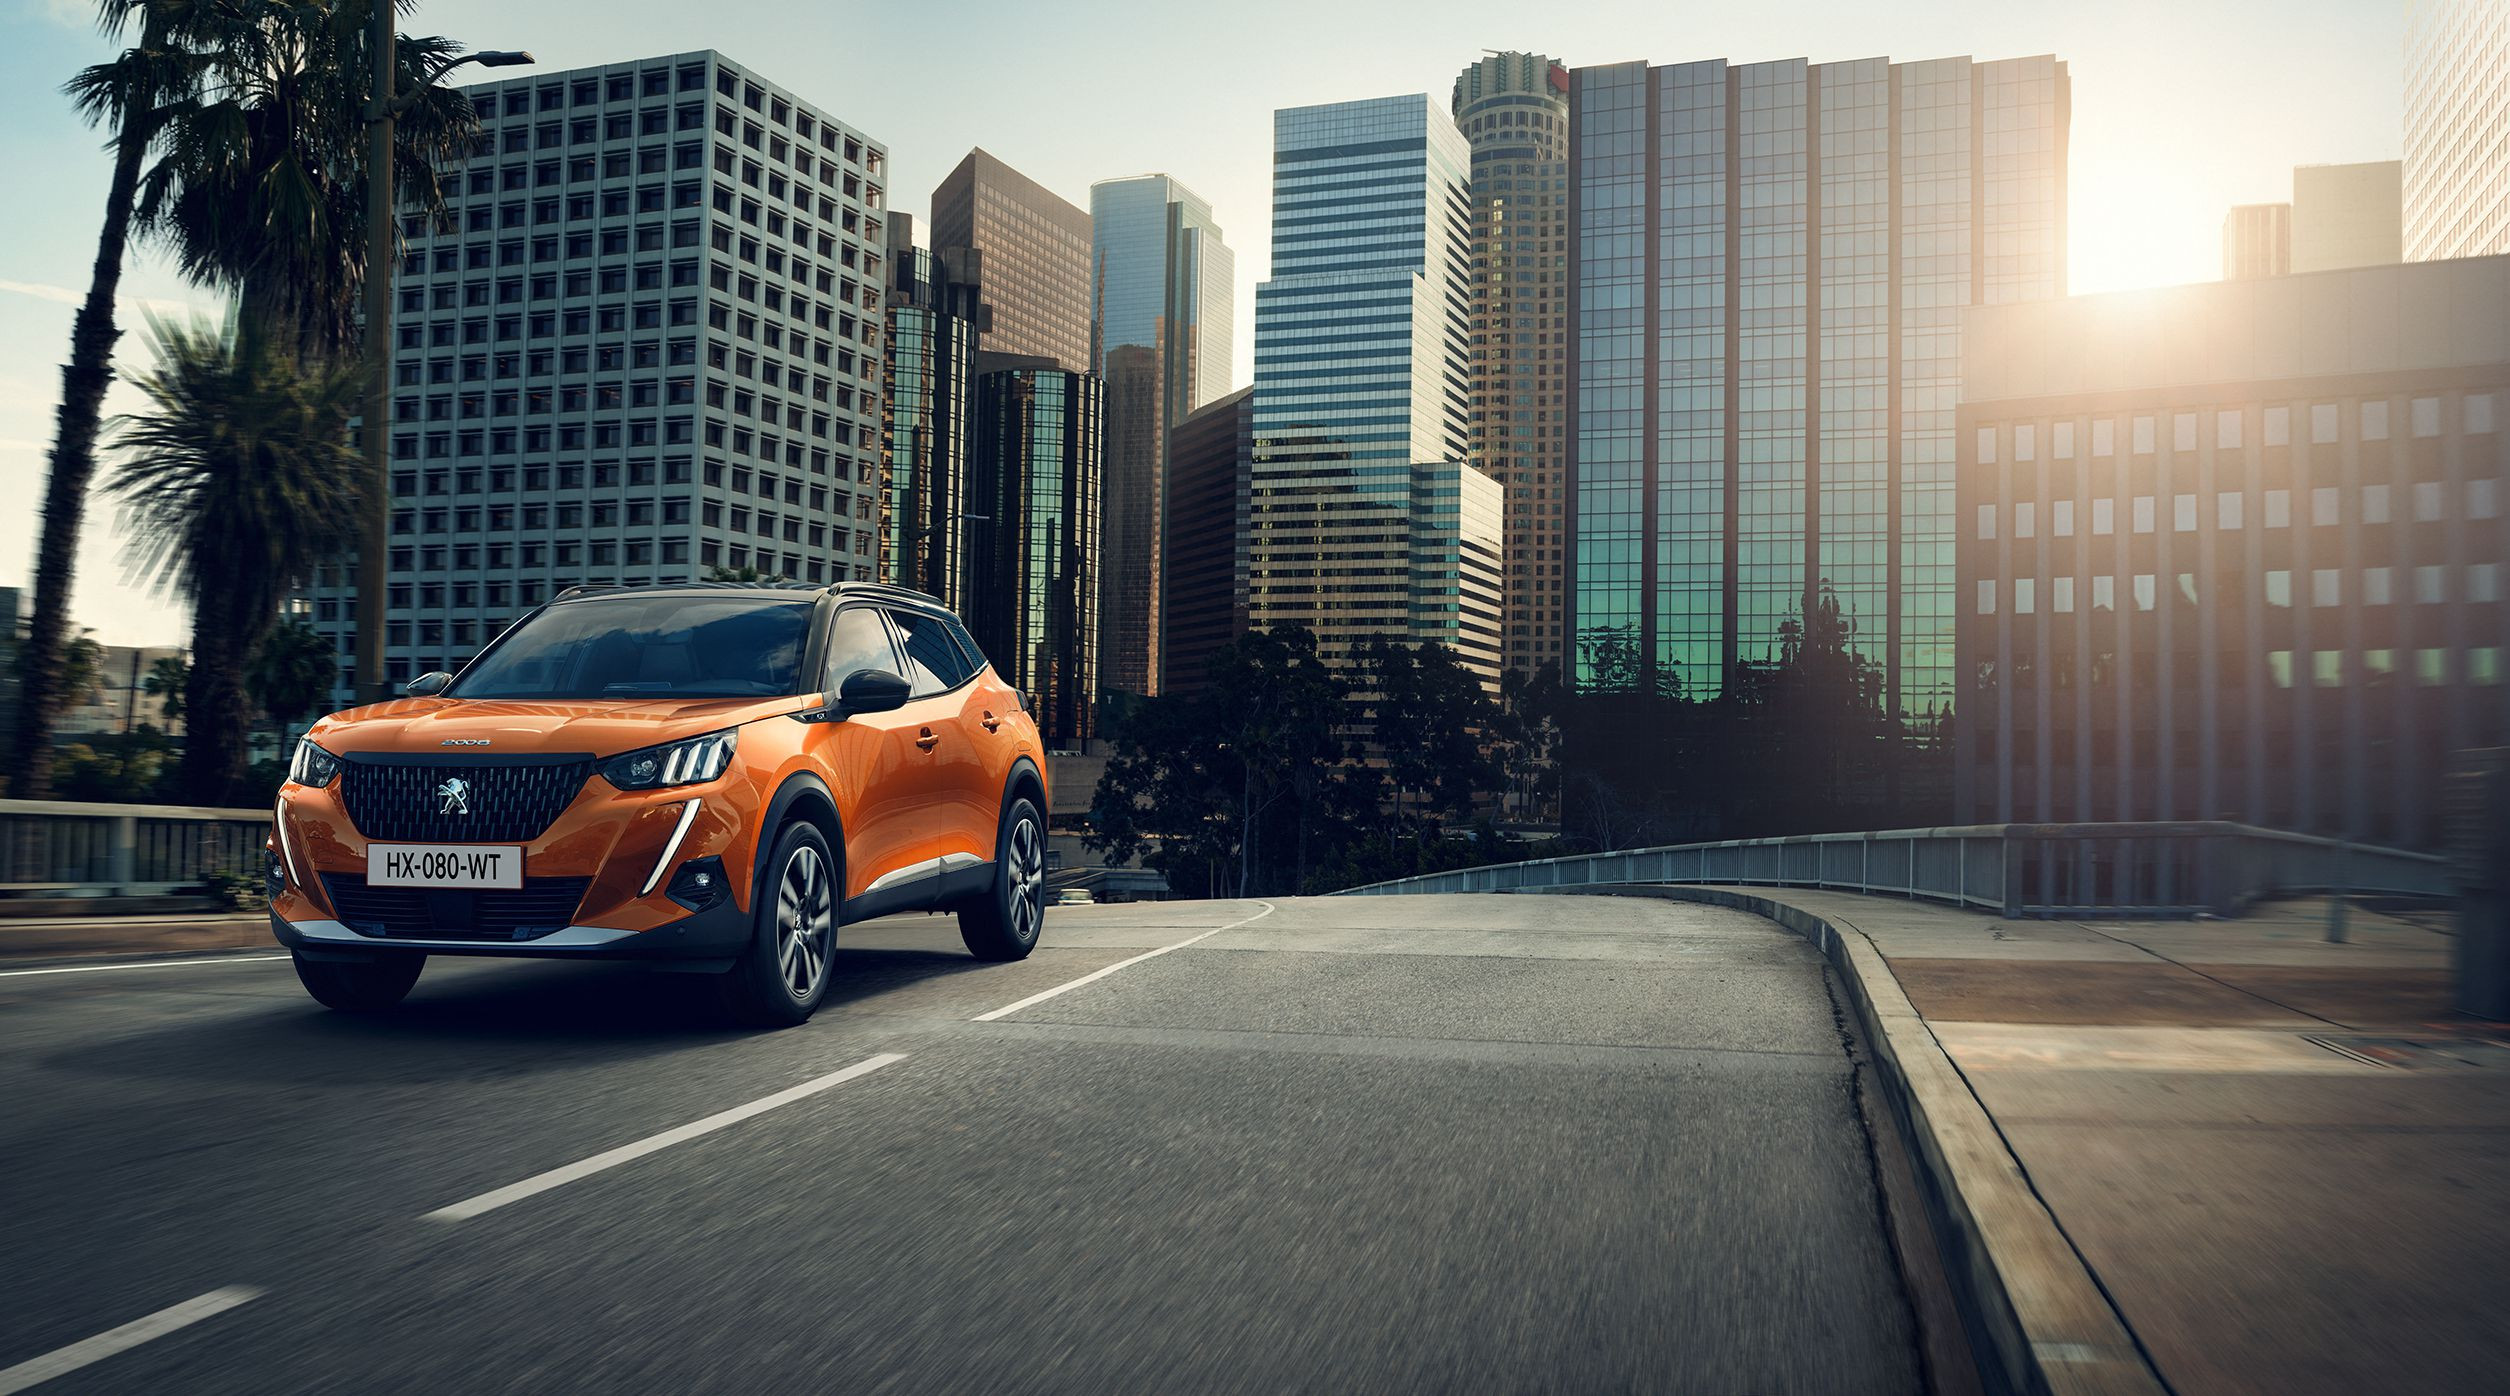 Orange Peugeot 2008 driving on a road